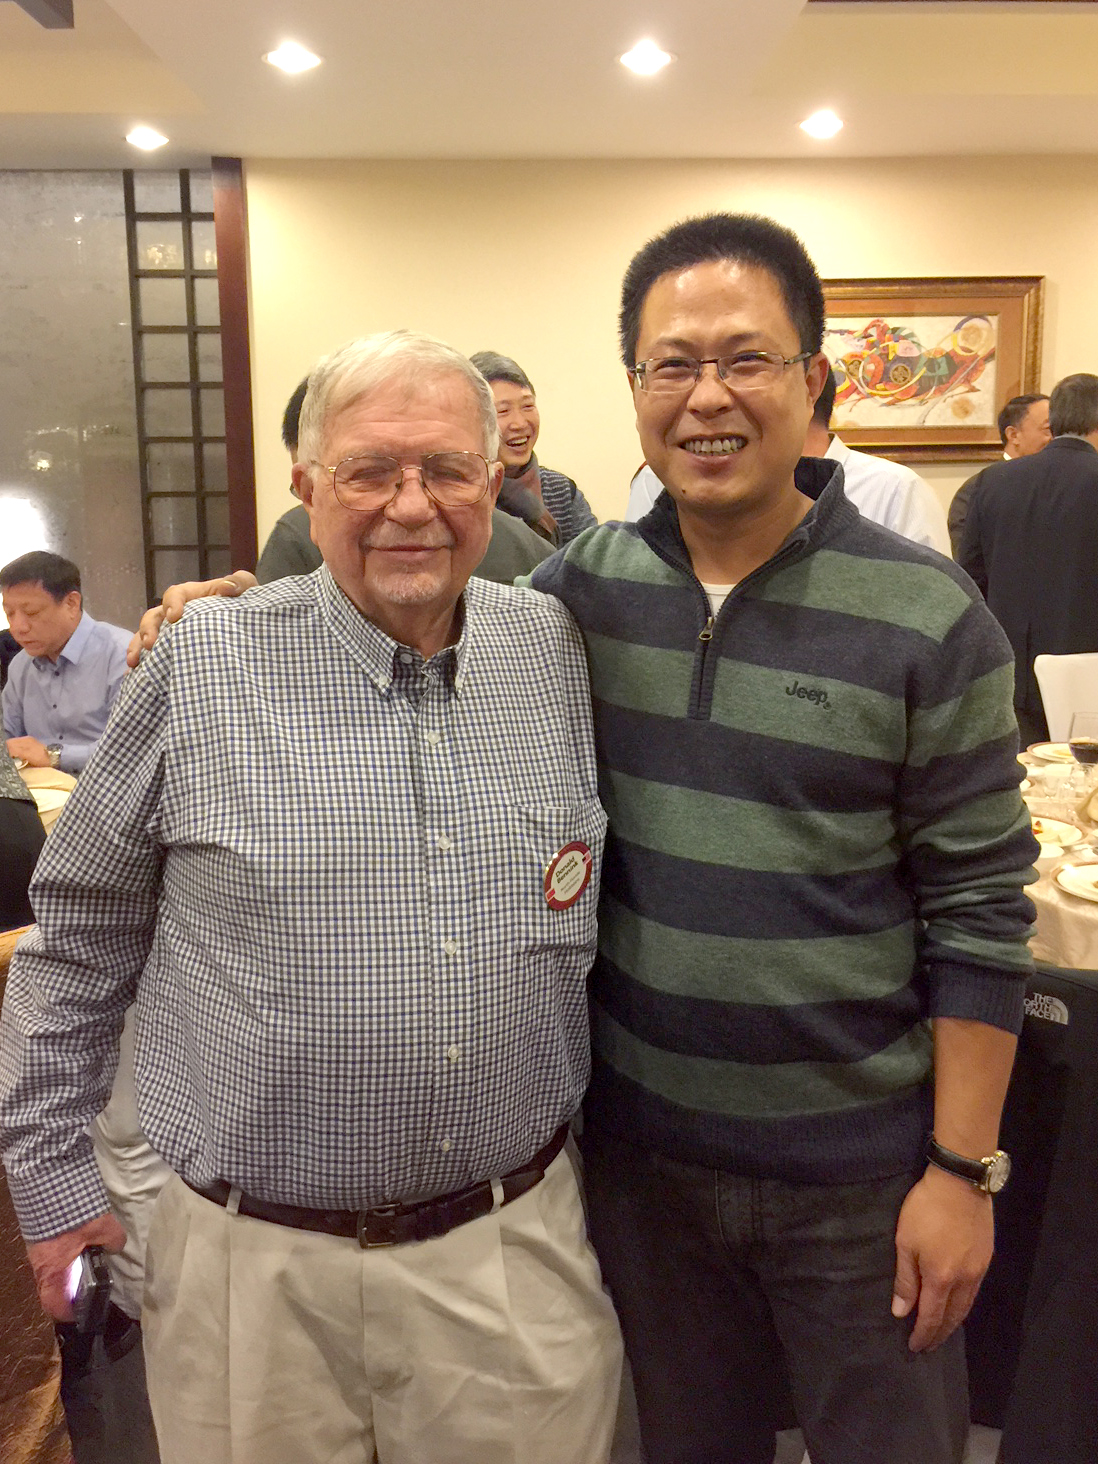 Dr. Donald Bennink and Mr. Liu Dengke